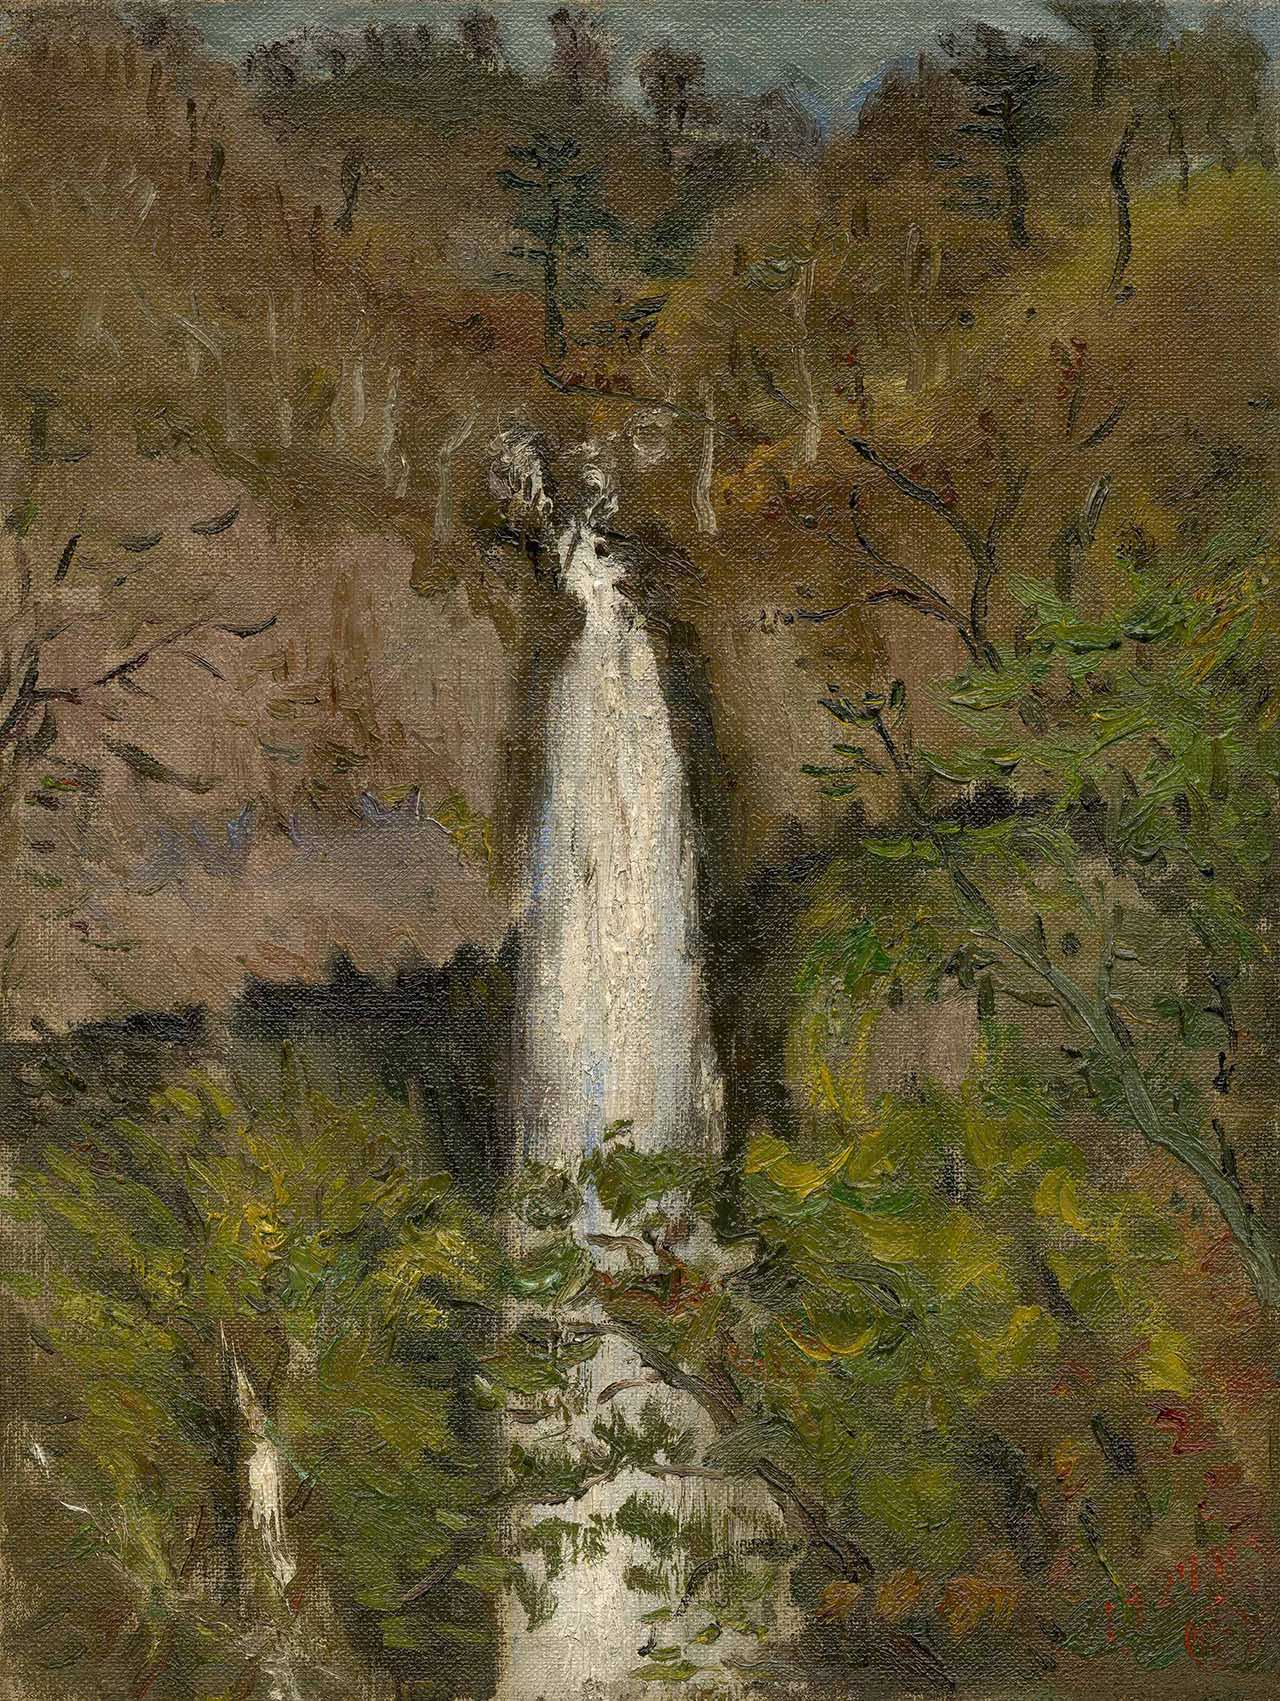 Kegon Waterfall Oil on canvas 41.2x32.6